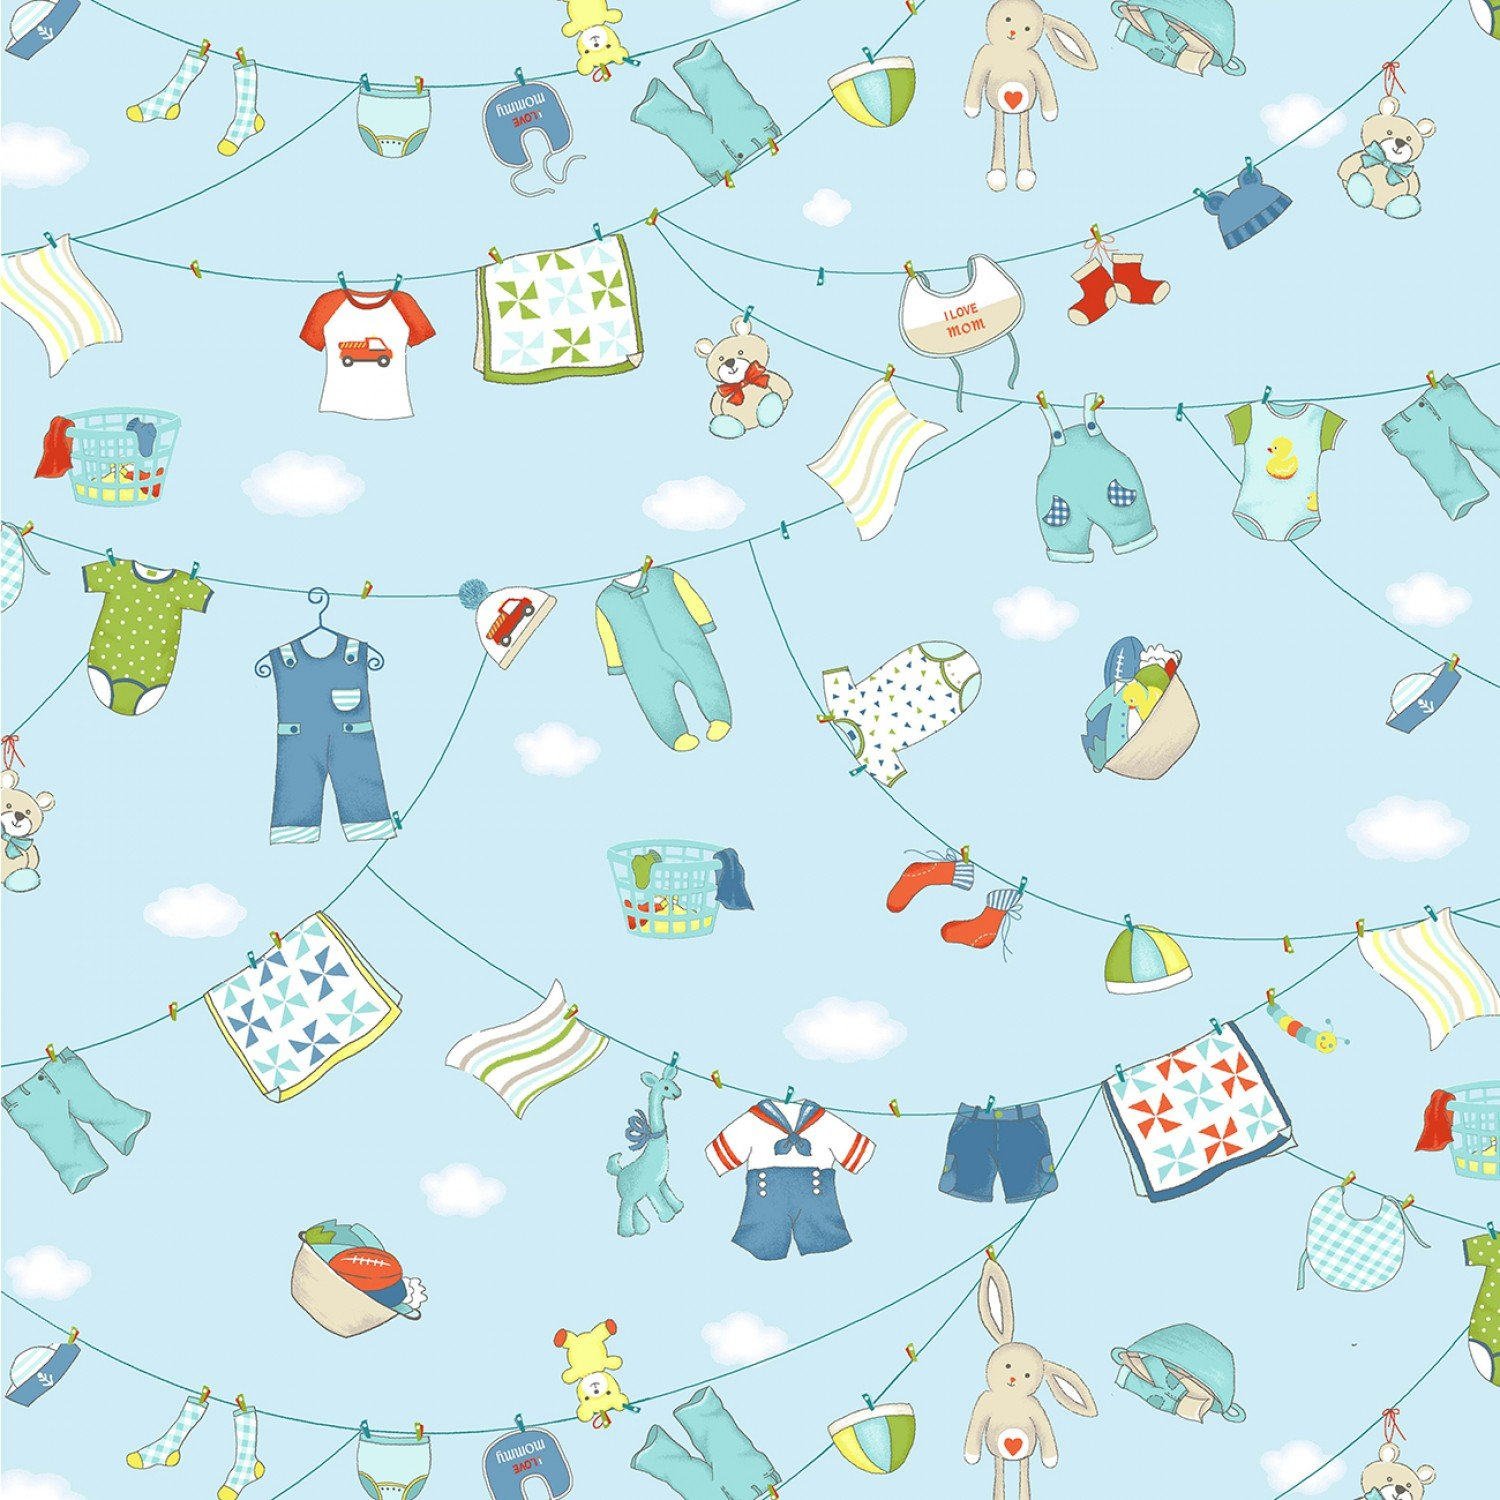 Hanging Out Children's Cotton Fabric from Michael Miller Fabrics